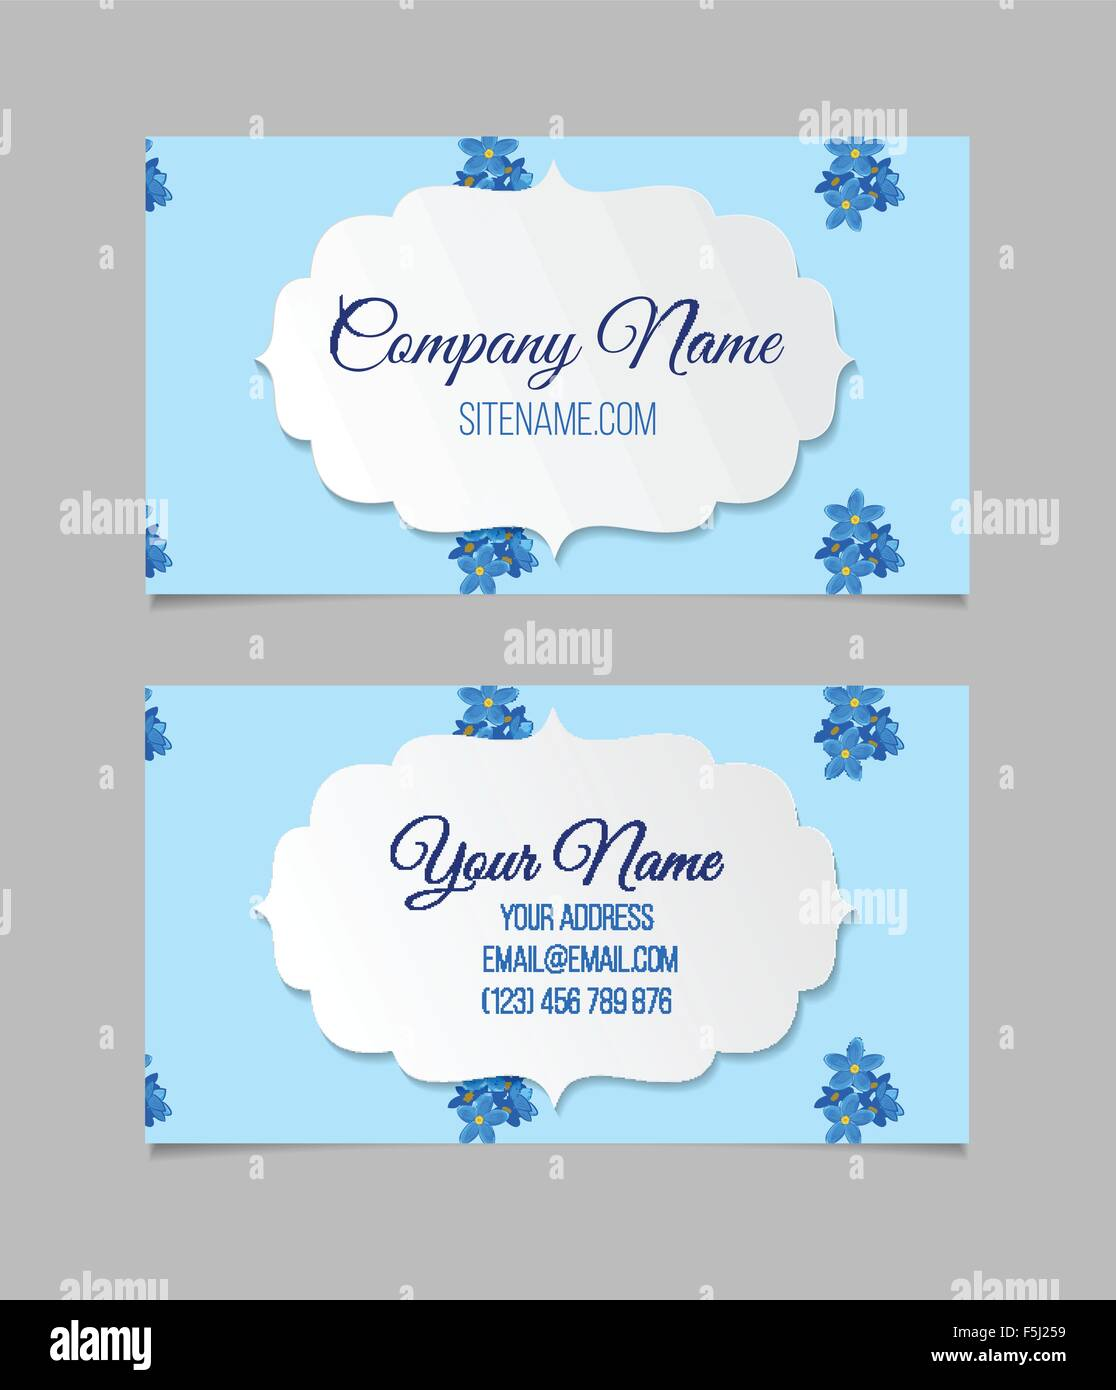 Floral business card template Stock Vector Art & Illustration ...